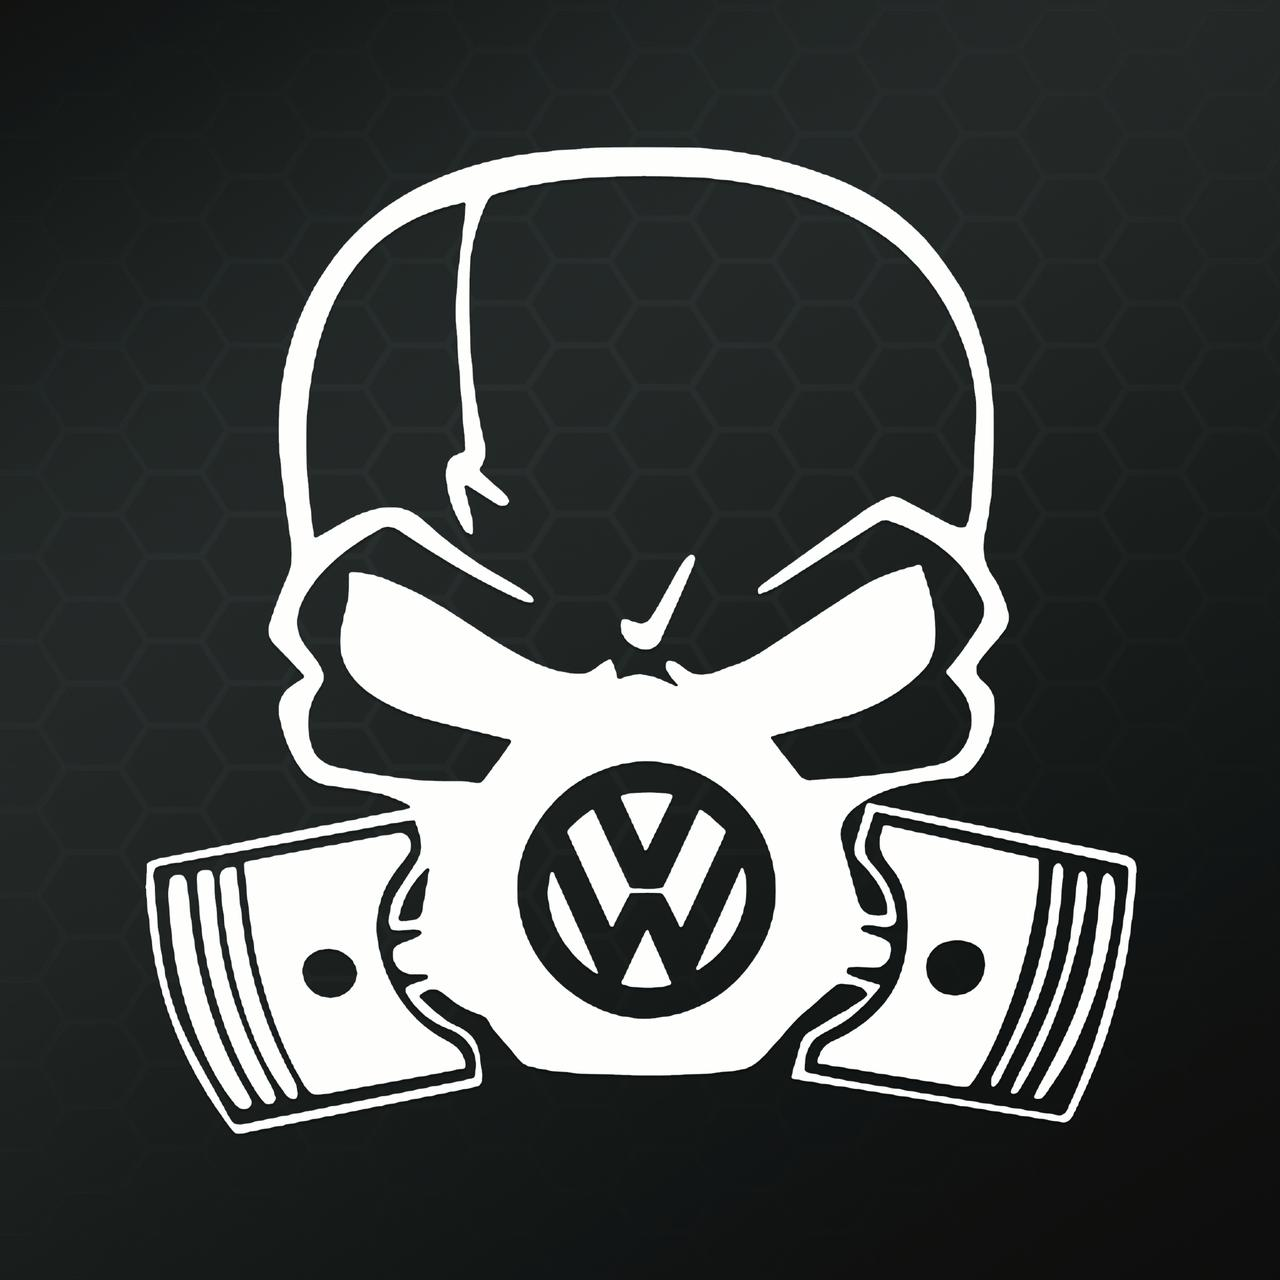 VW Skull Piston Gas Mask Vinyl Decal Sticker|Cars Trucks Vans Walls Laptops Cups|White|5.5 In|KCD827 by